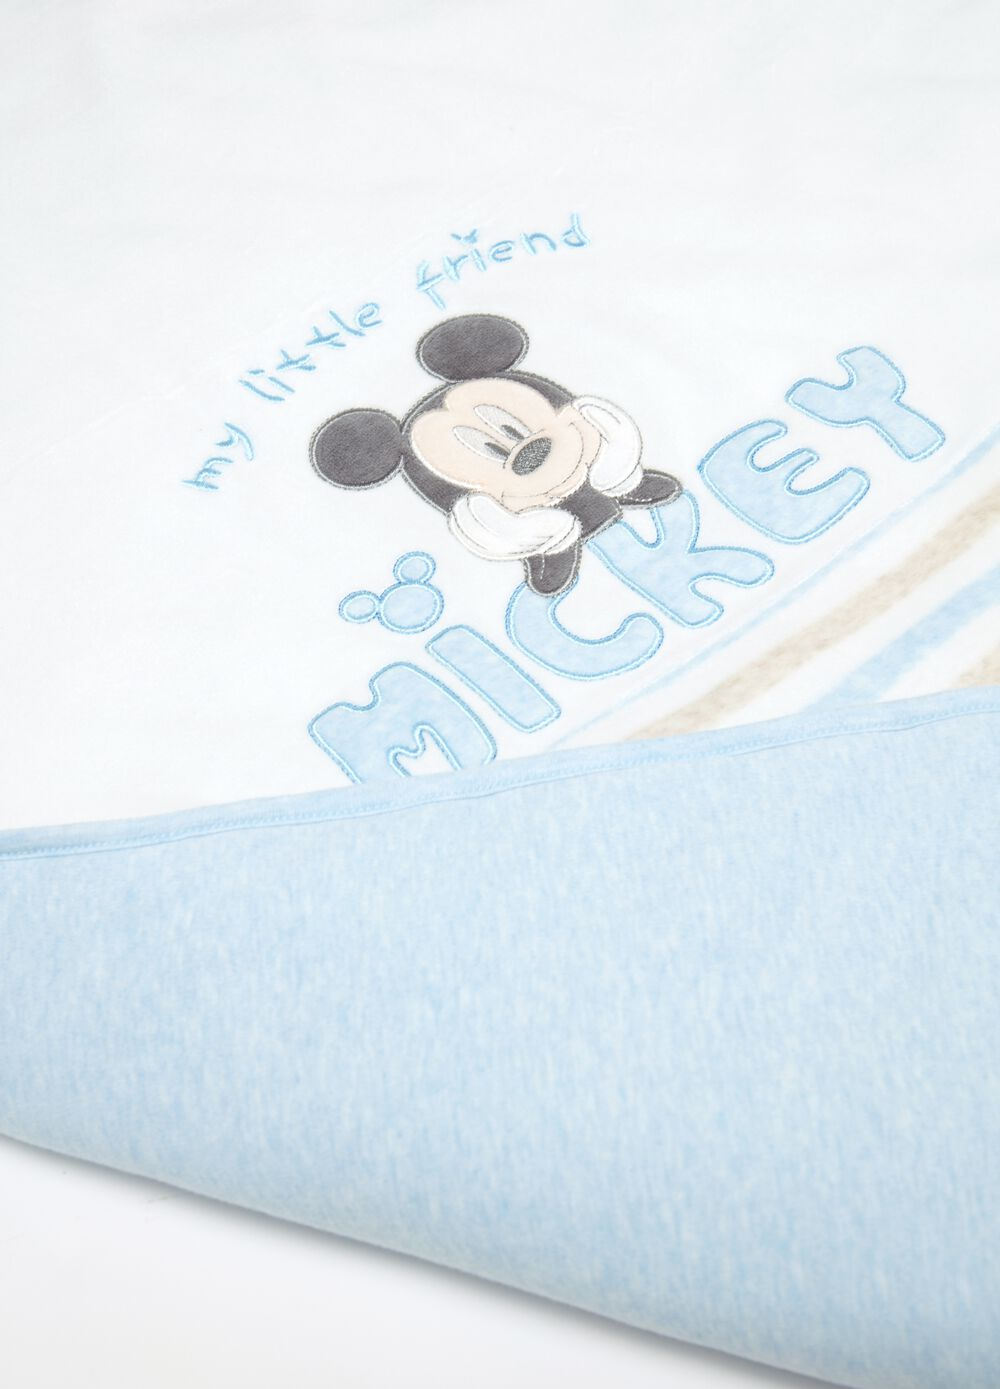 Blanket with Disney Mickey Mouse embroidery